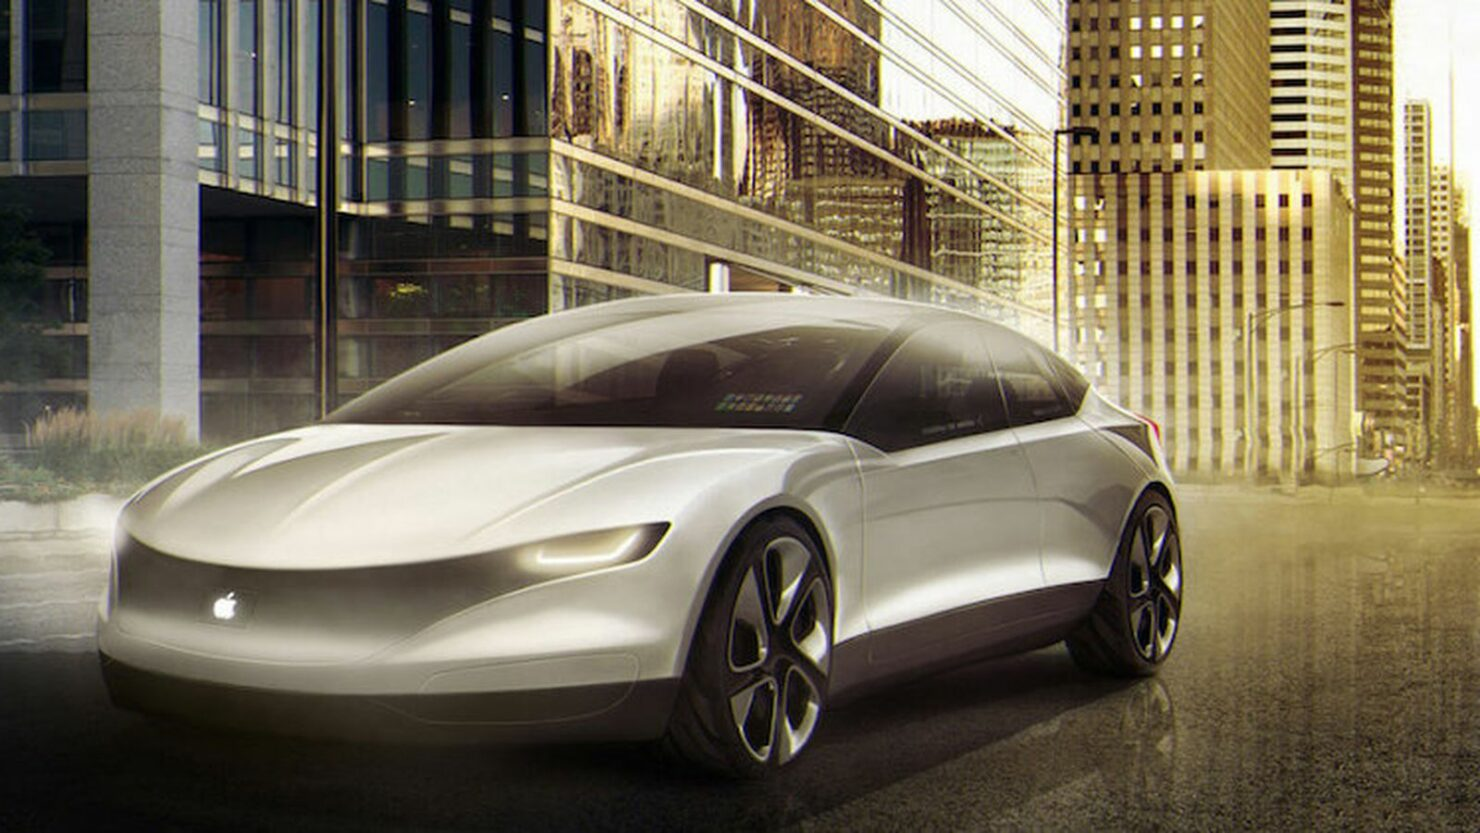 Apple Car to Debut Next Year in September, Claims Sketchy Report